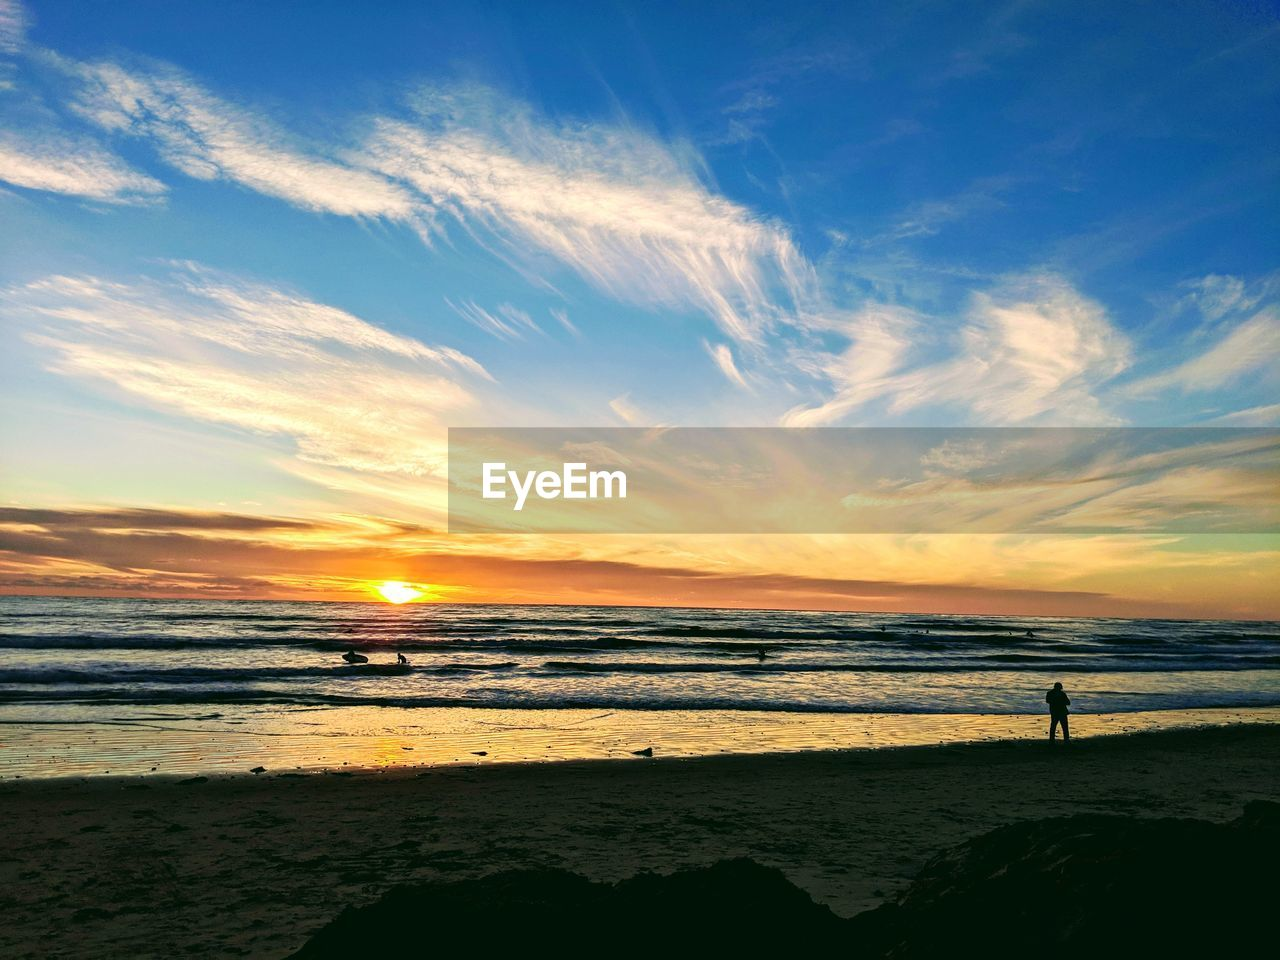 sky, beach, water, sea, land, sunset, beauty in nature, scenics - nature, horizon over water, cloud - sky, horizon, tranquility, tranquil scene, silhouette, idyllic, real people, standing, nature, orange color, outdoors